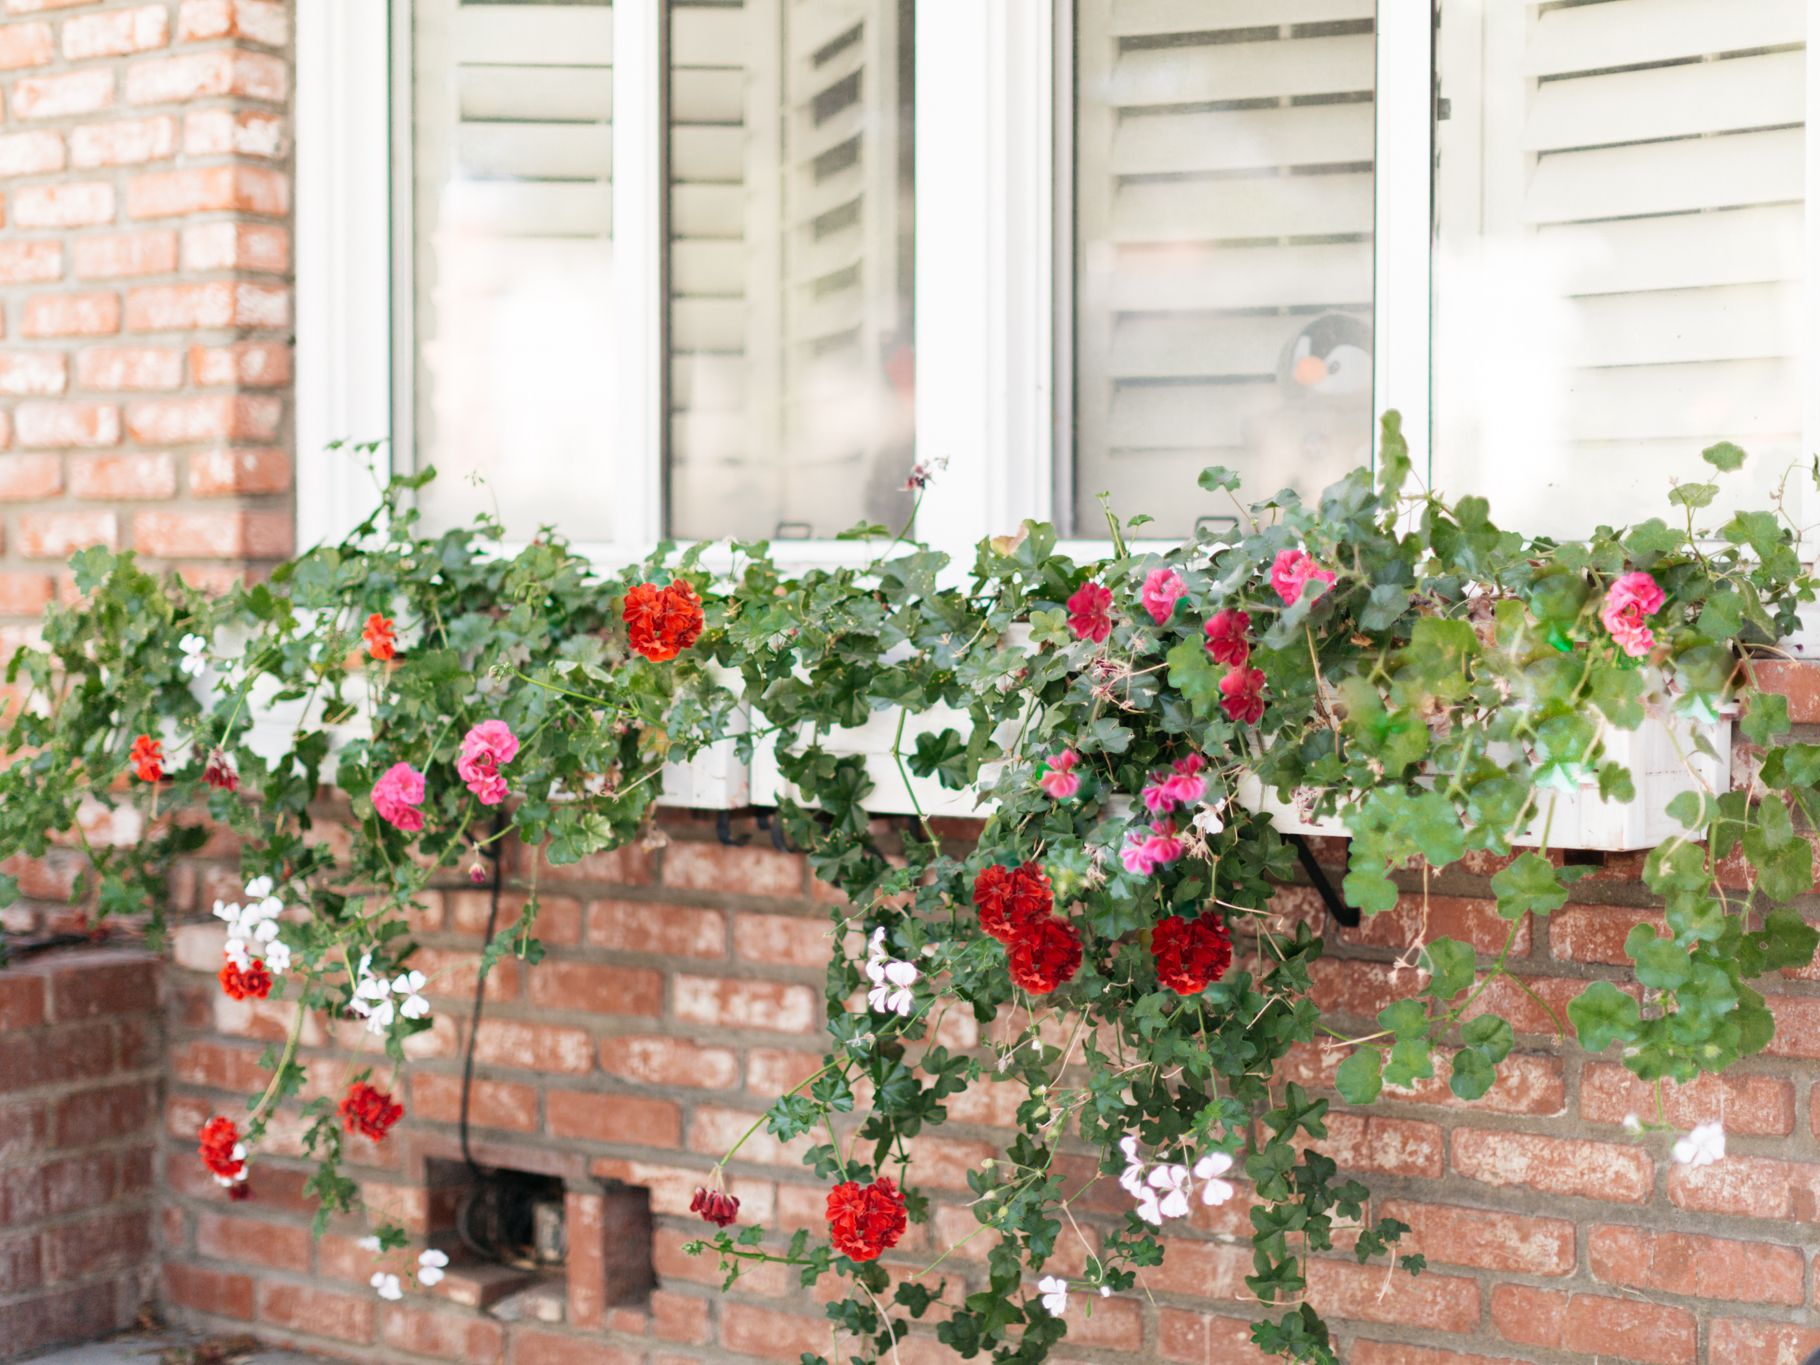 12 DIY Window Box Ideas for Your Home